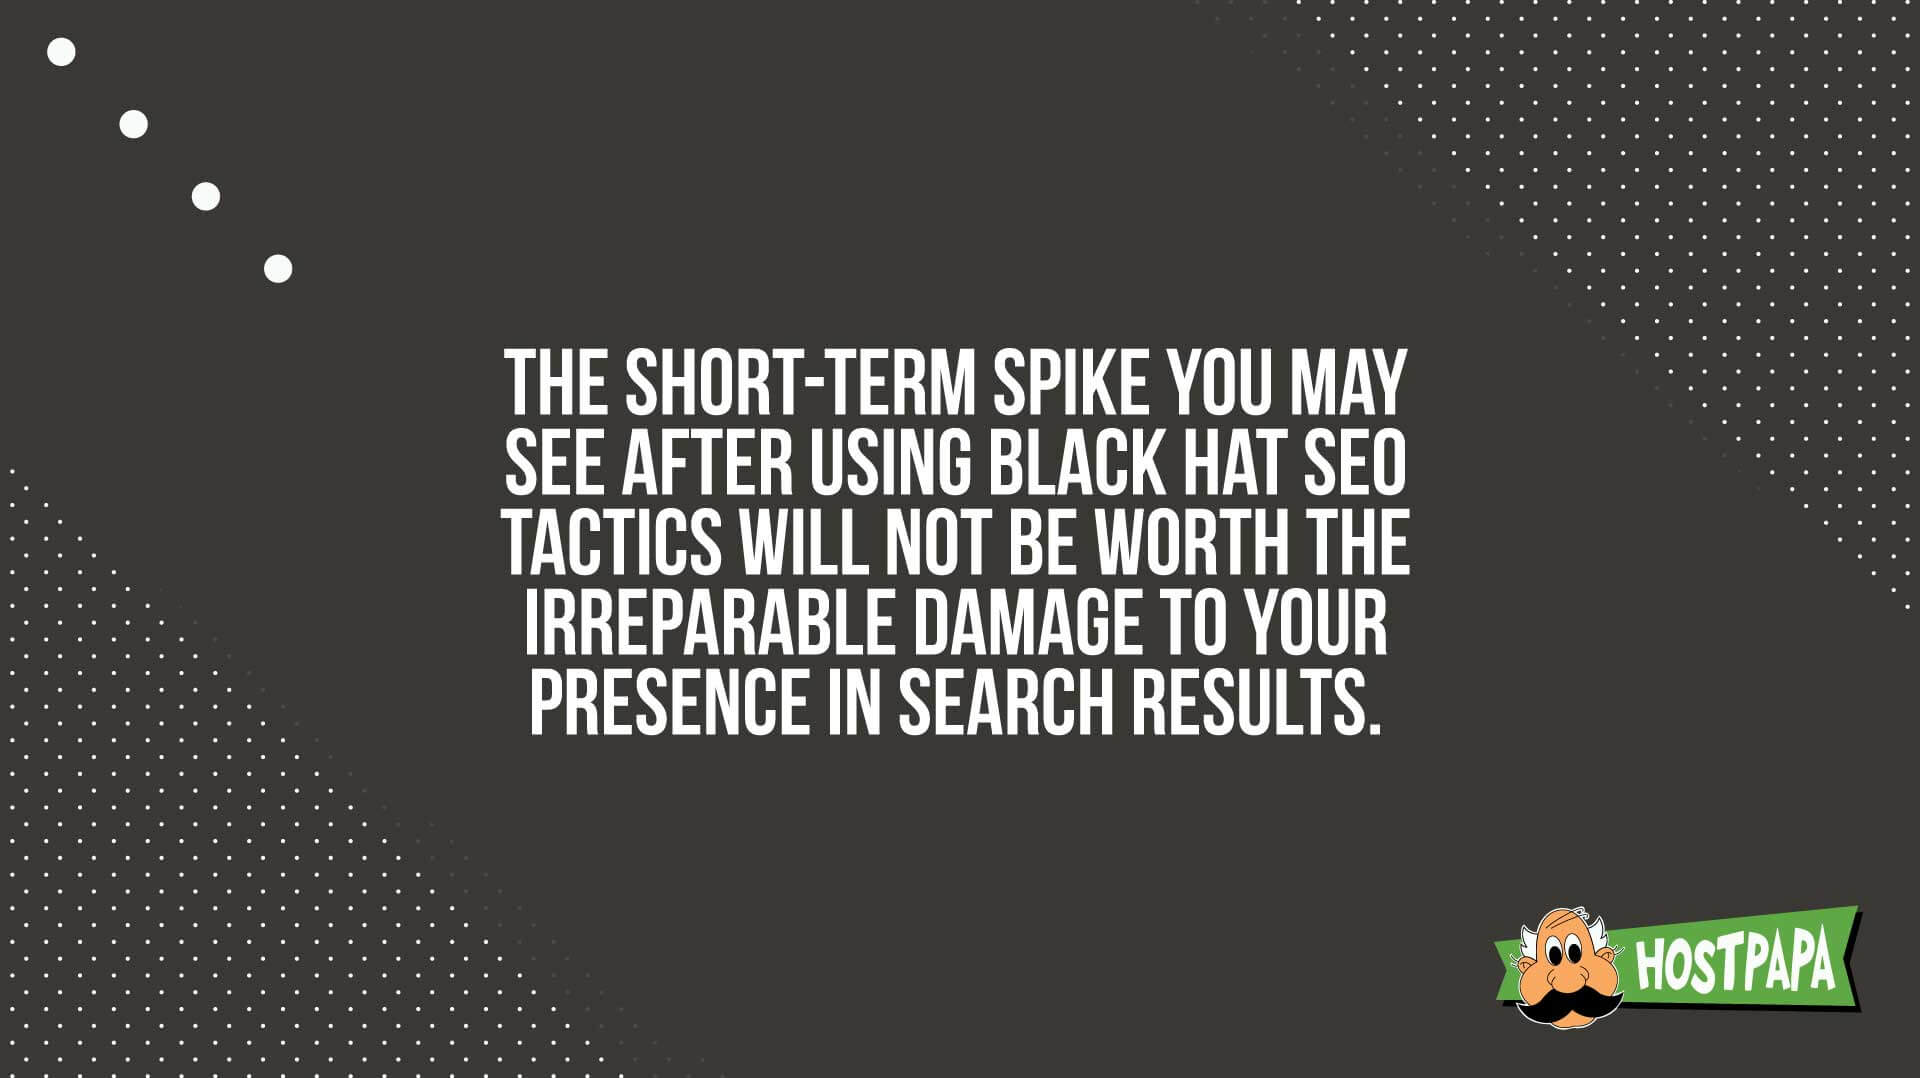 The short-term spike you may see after using black hat SEO tactics will not be worth the damage to your presence in search results